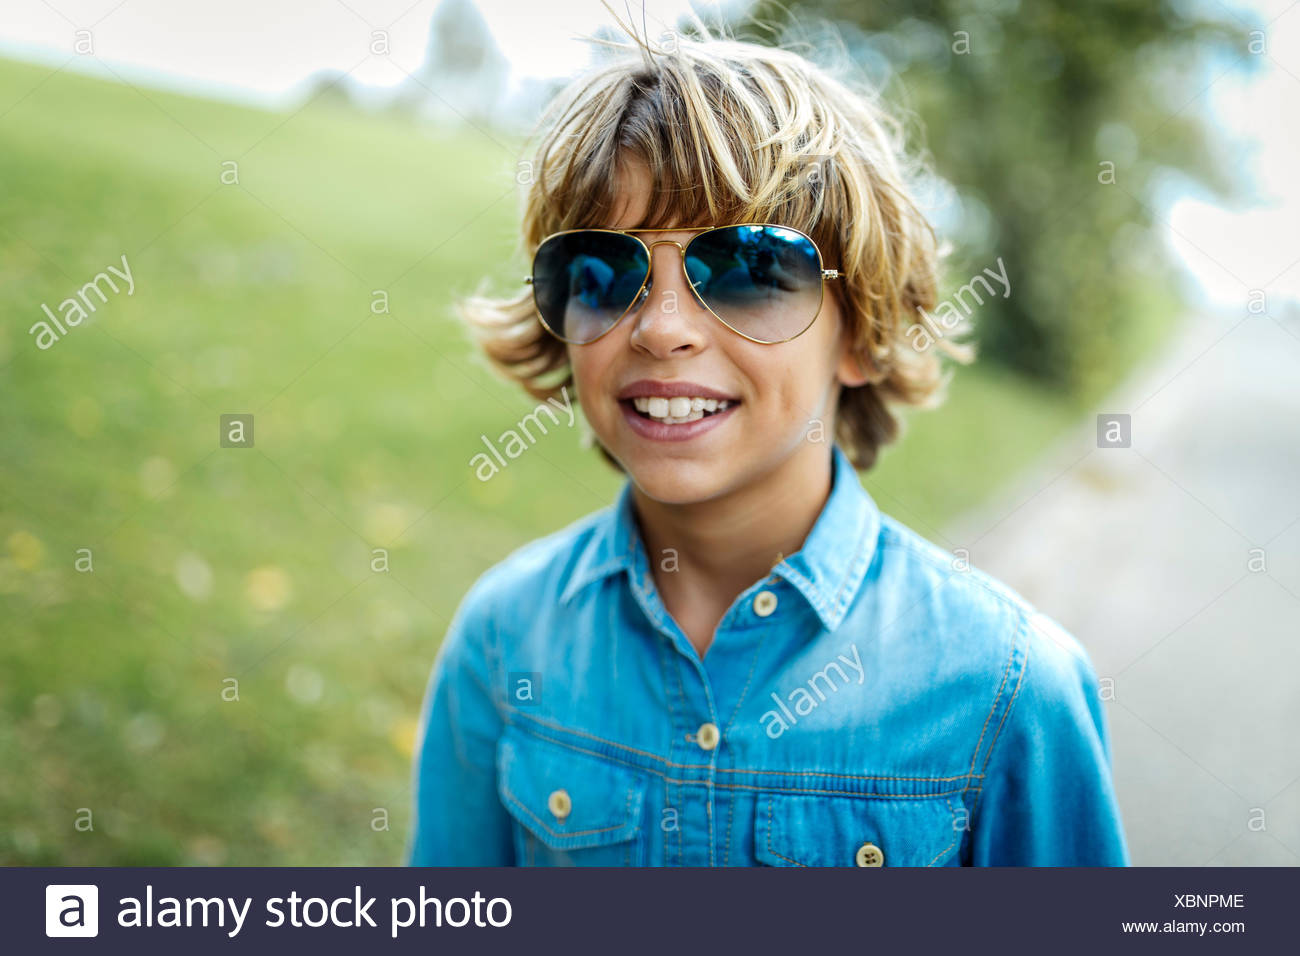 Portrait of blond boy wearing blue coloured sunglasses and denim shirt - Stock Image